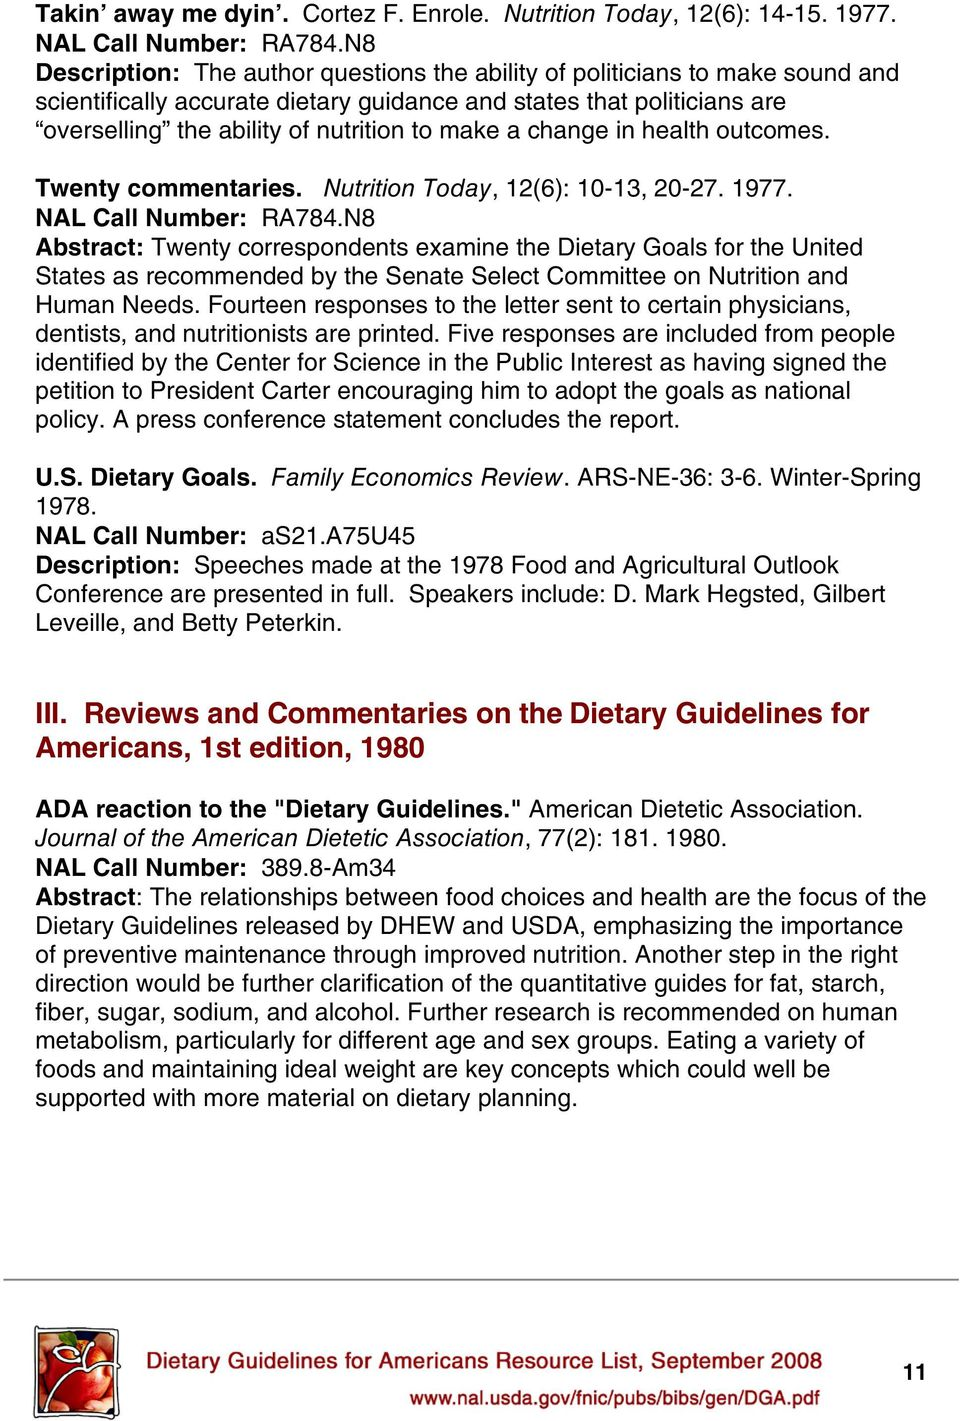 a change in health outcomes. Twenty commentaries. Nutrition Today, 12(6): 10-13, 20-27. 1977. NAL Call Number: RA784.